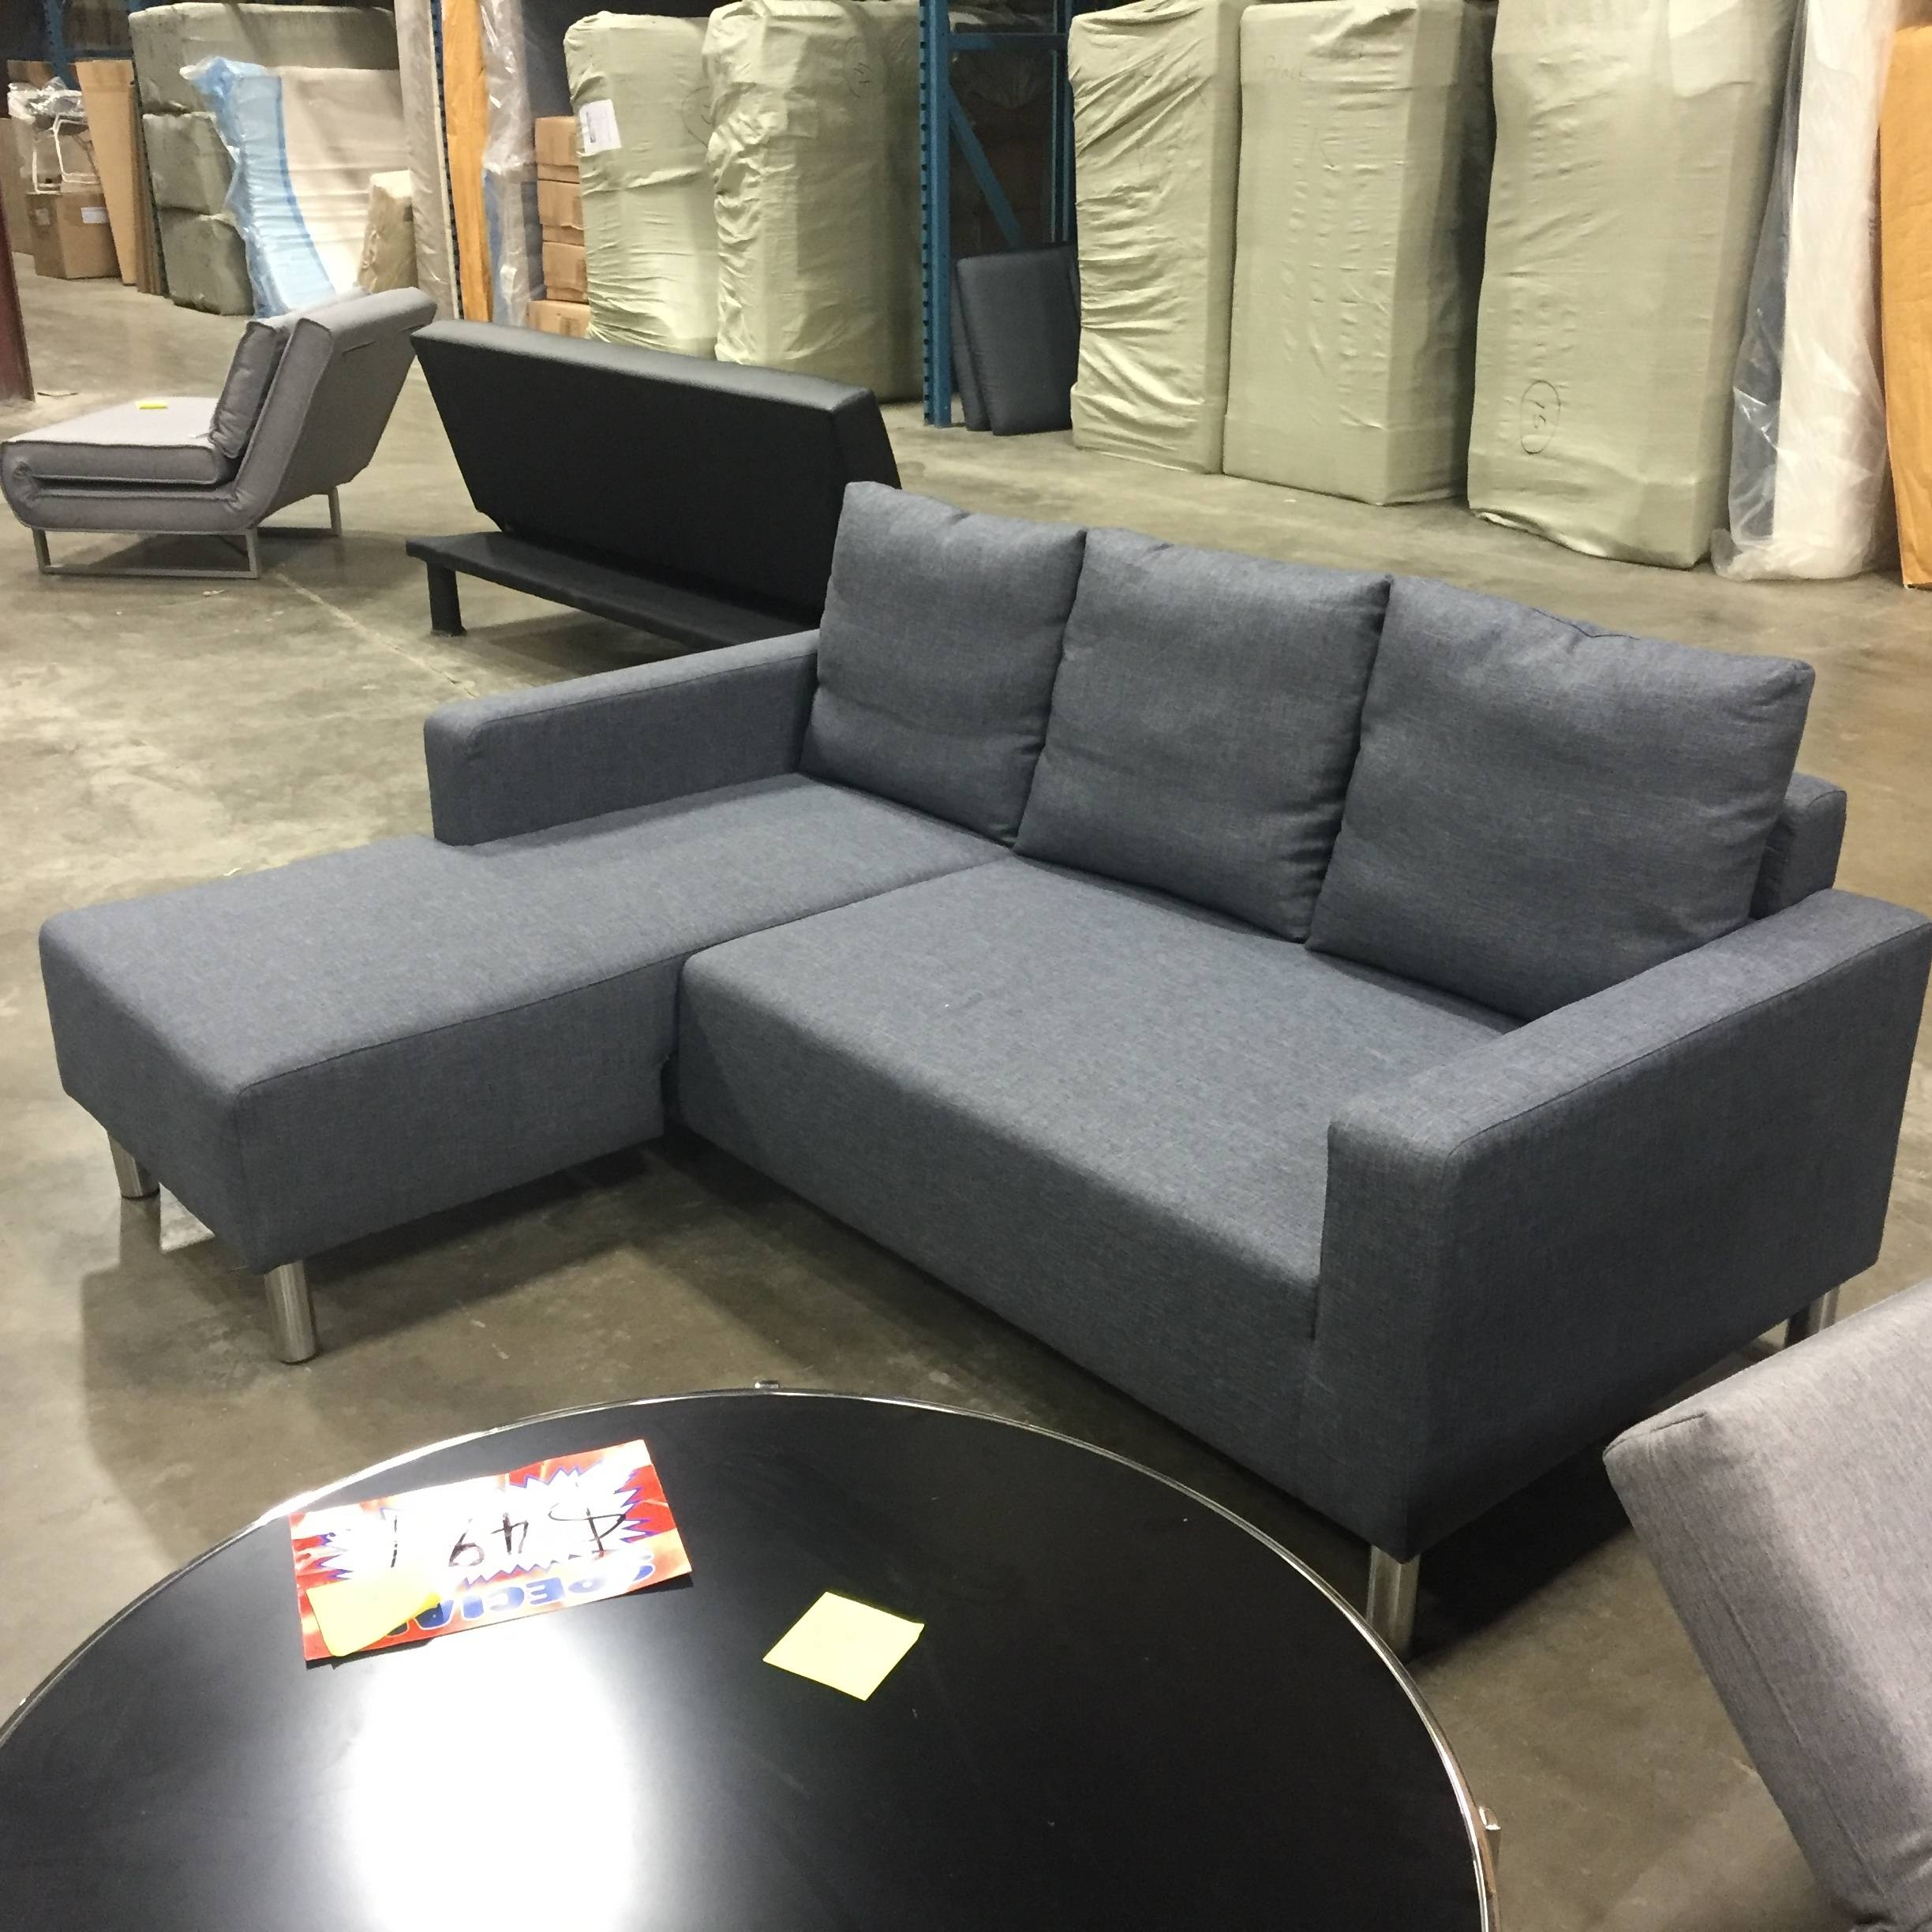 Sectional Sofas For Condos - Thesecretconsul pertaining to Condo Size Sofas (Image 11 of 15)